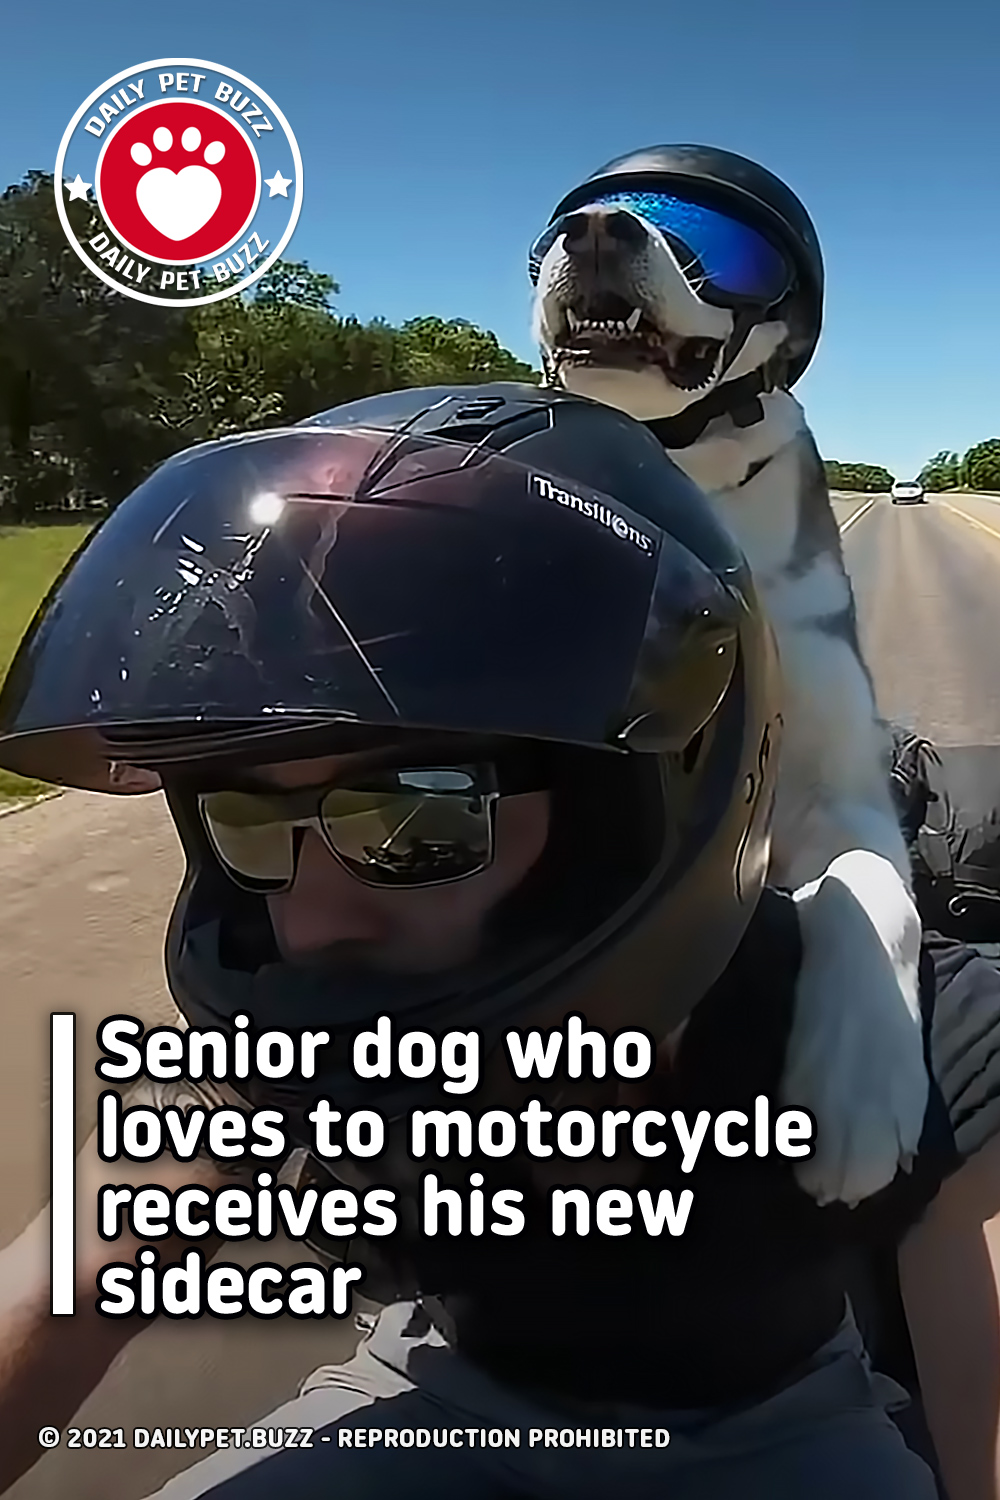 Senior dog who loves to motorcycle receives his new sidecar